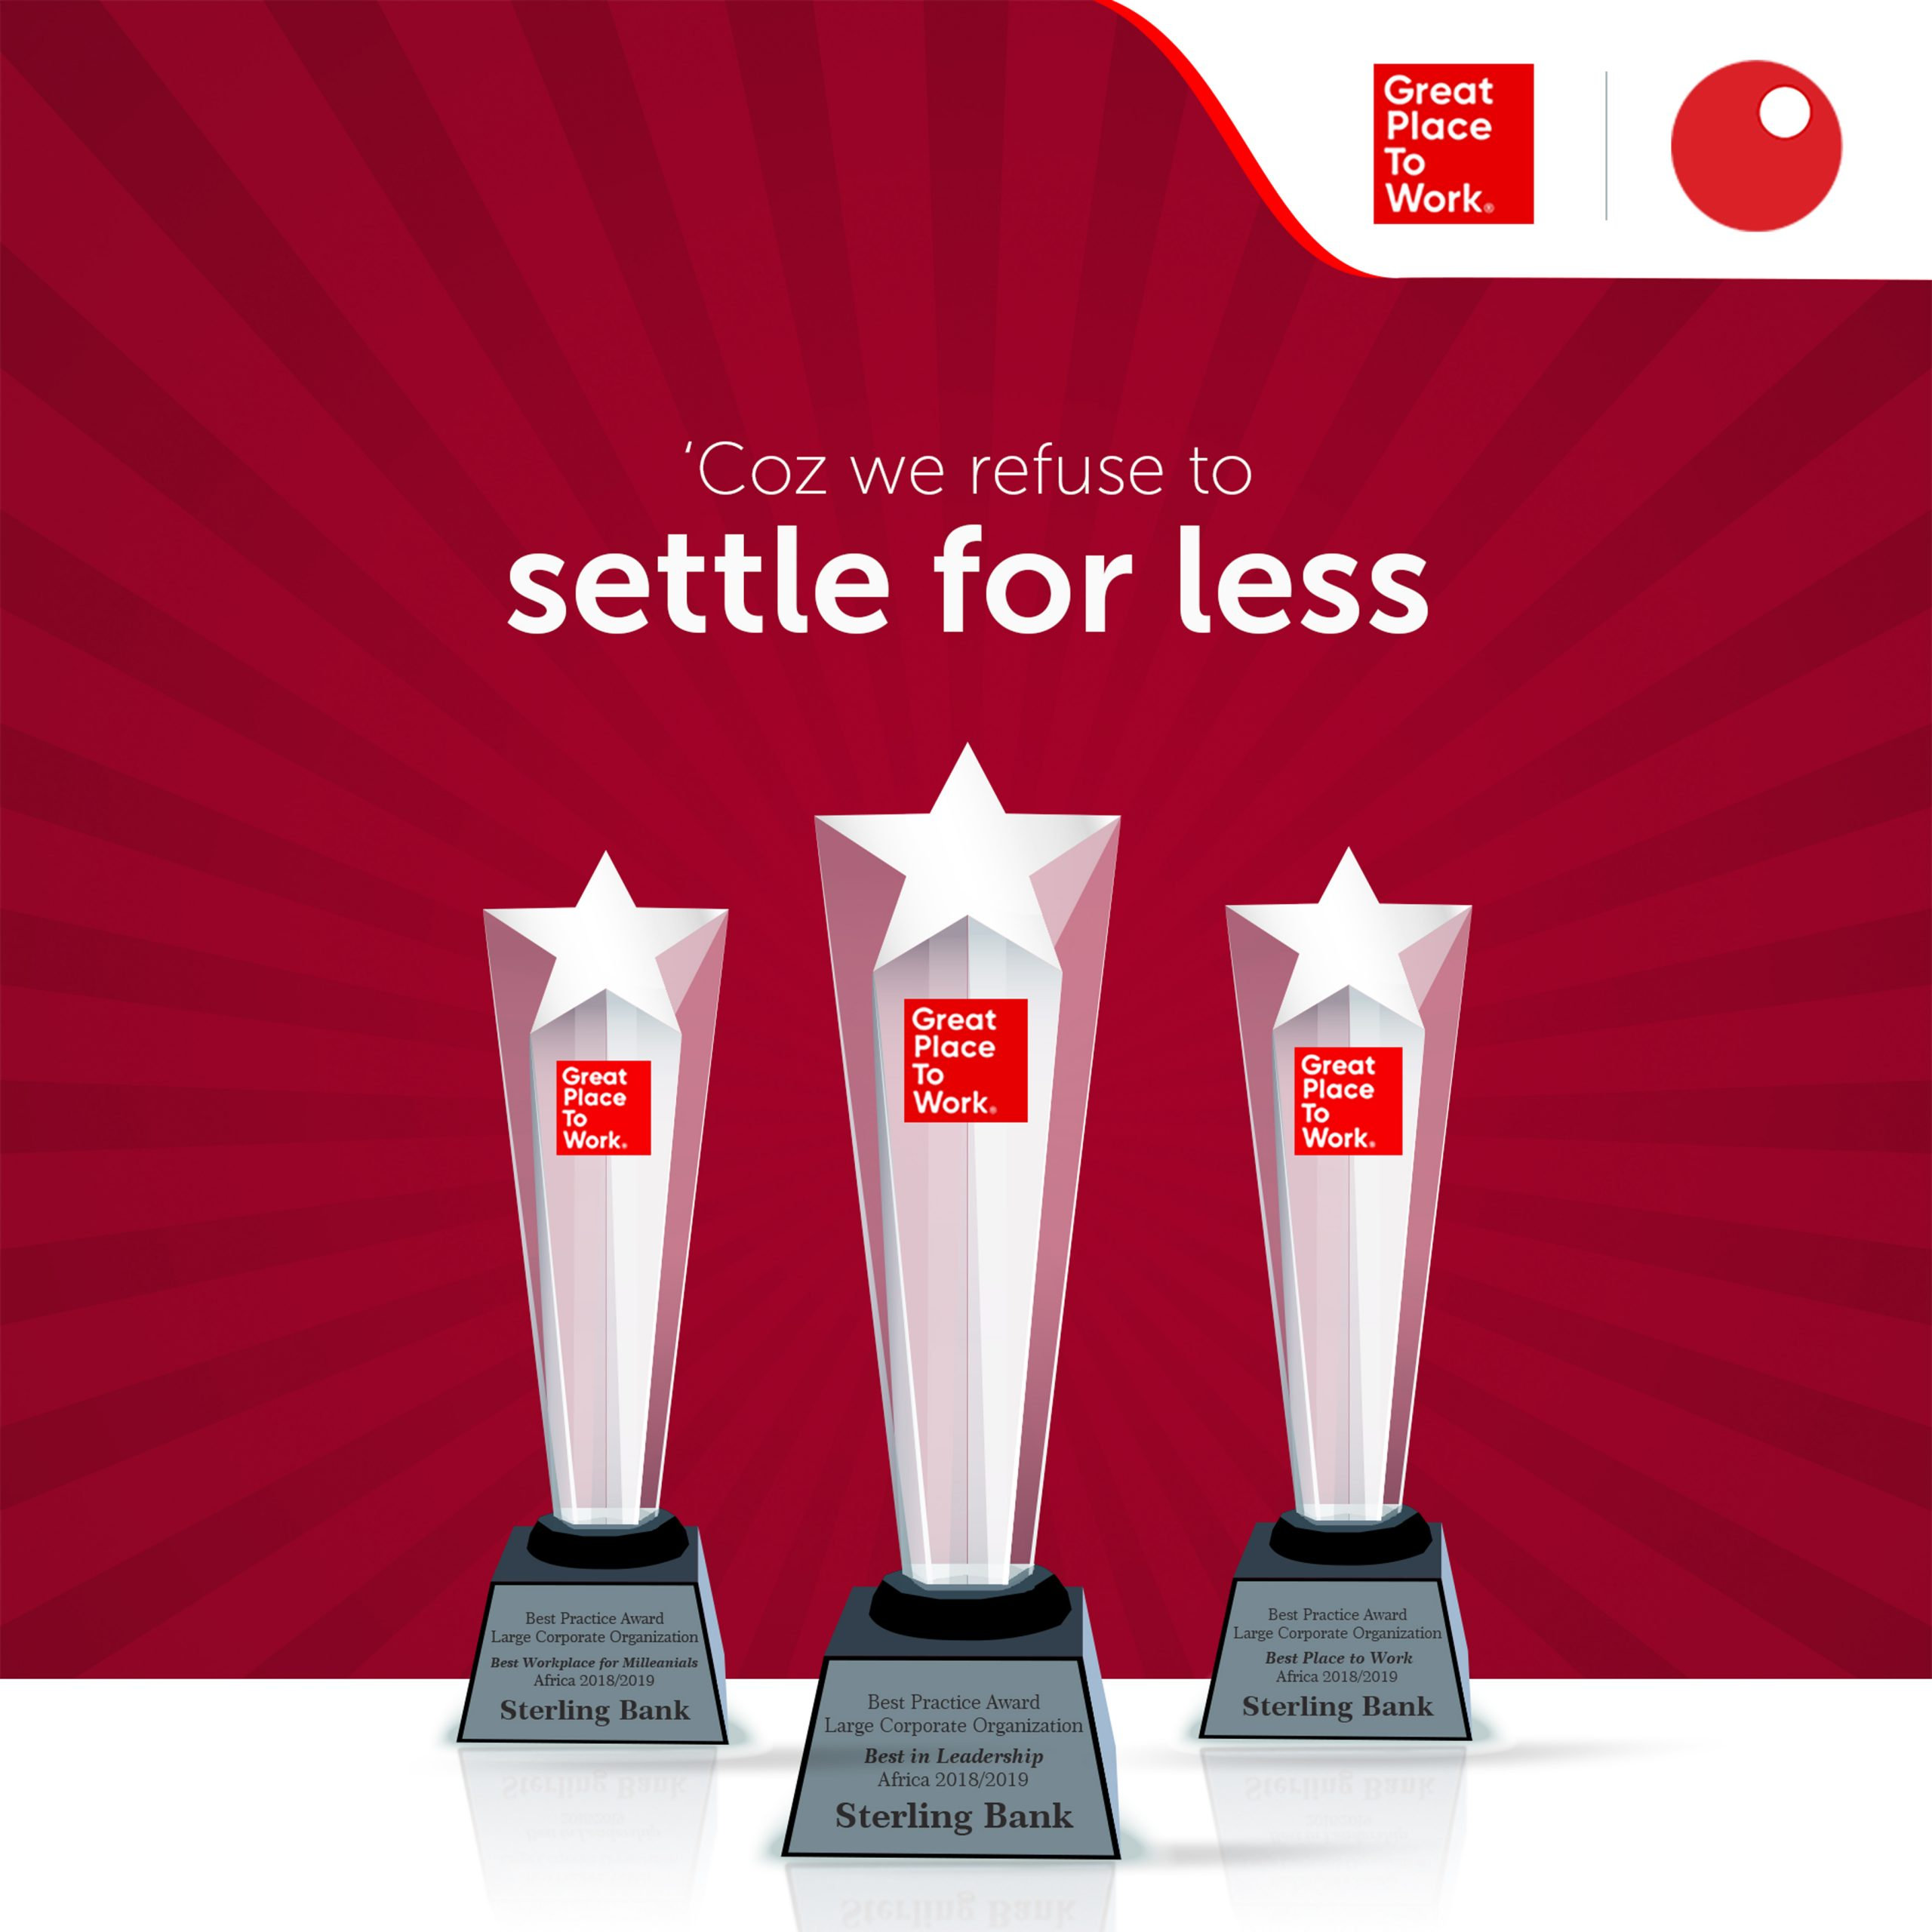 Sterling Bank is top best place to work in Africa